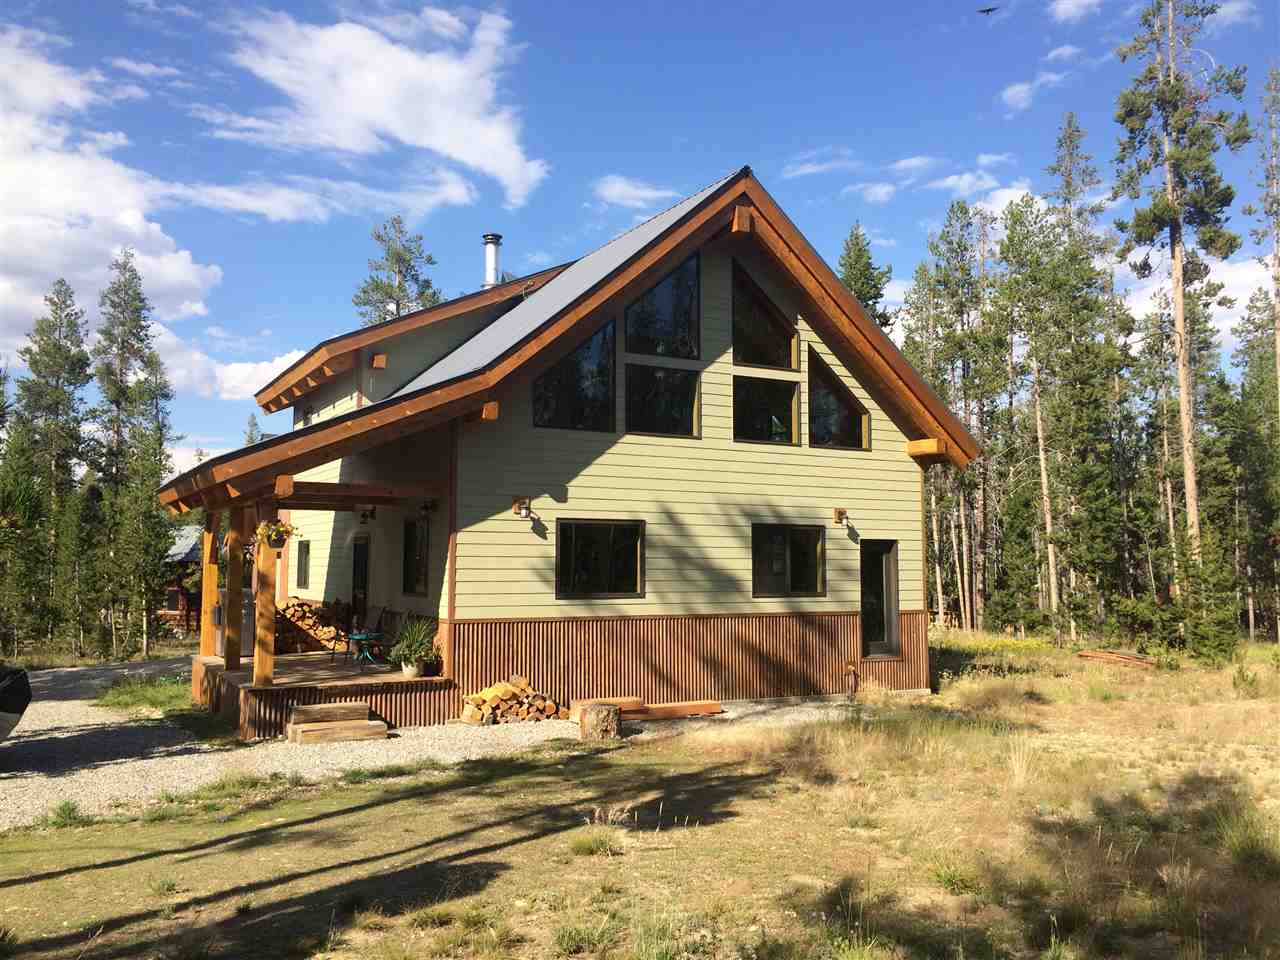 Single Family Home for Sale at 55 Stanley Way 55 Stanley Way Stanley, Idaho 83278